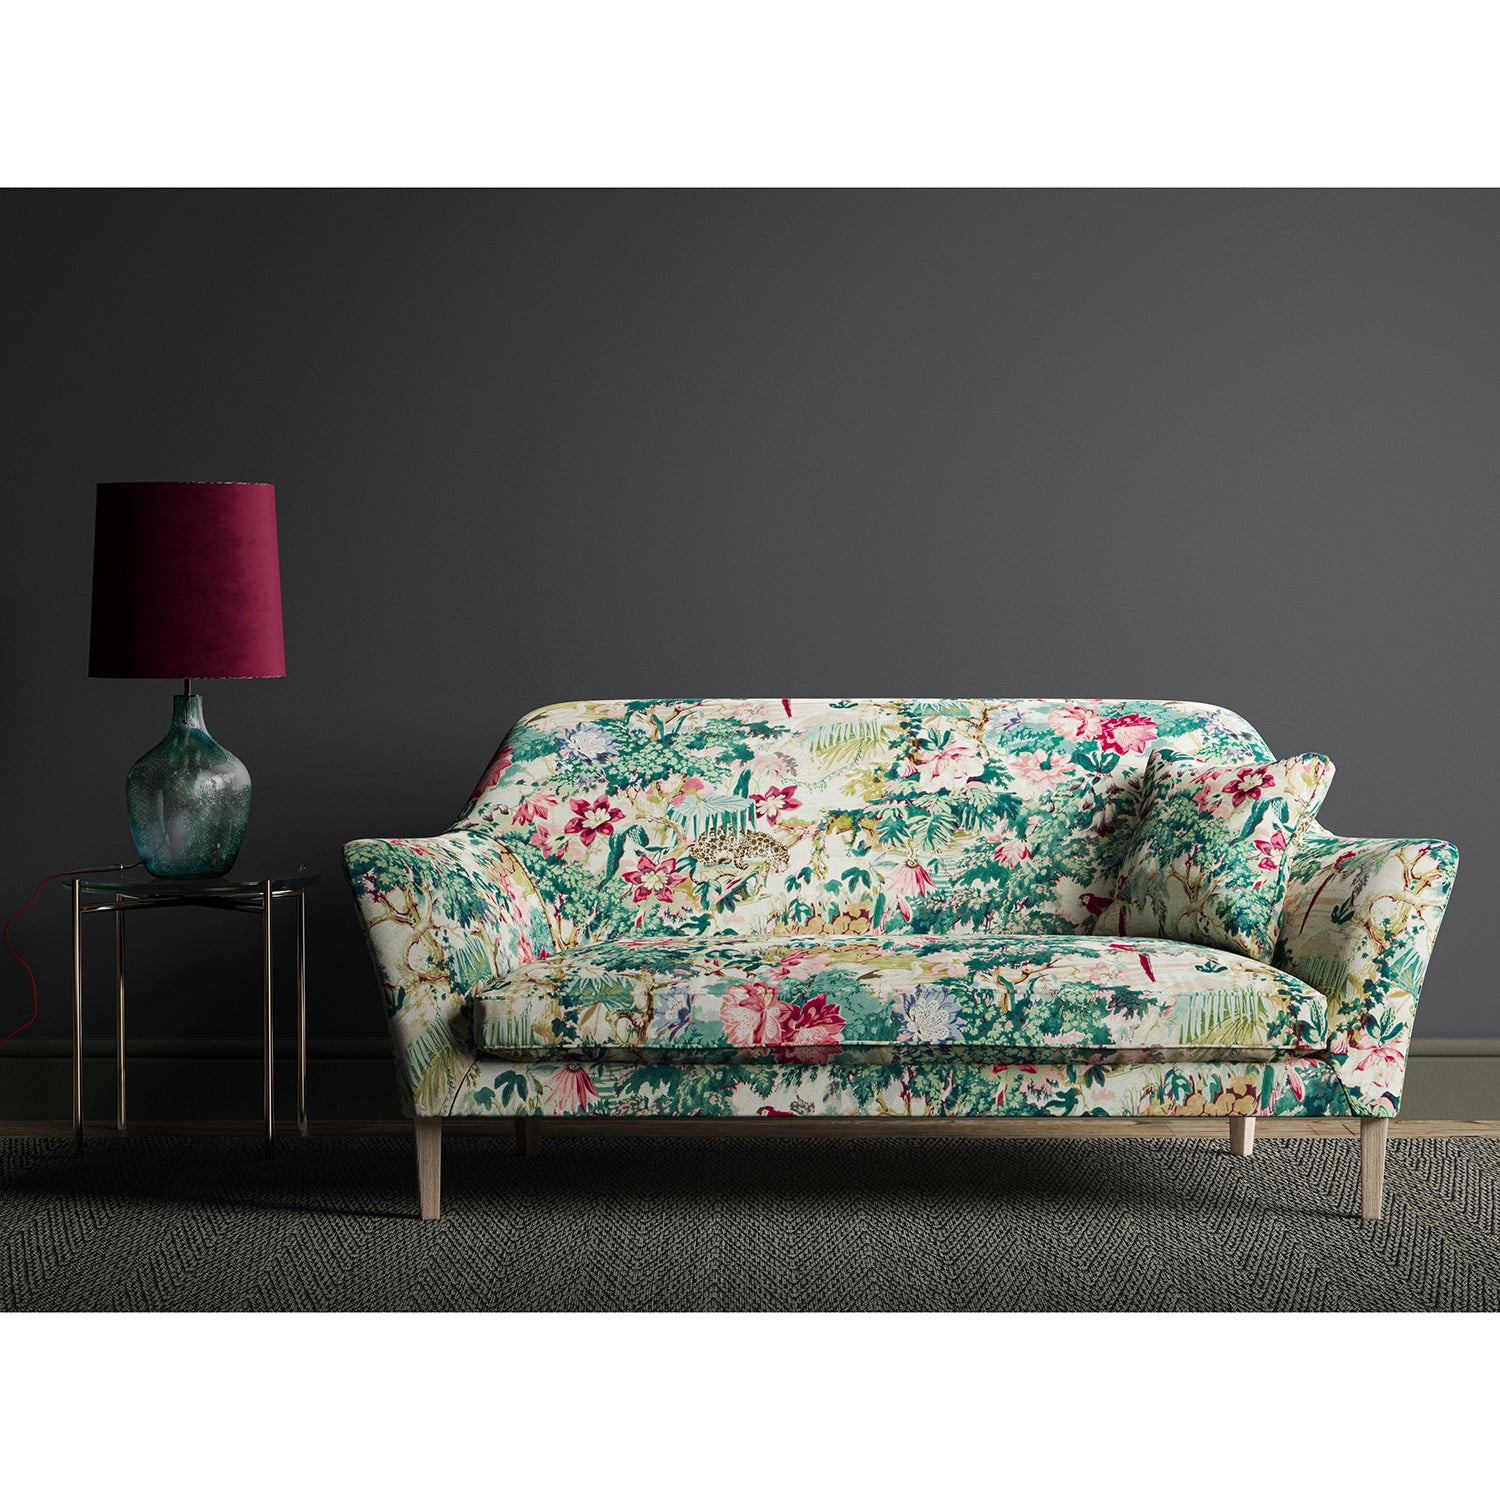 Sofa in a tropical linen fabric with a printed exotic jungle scene